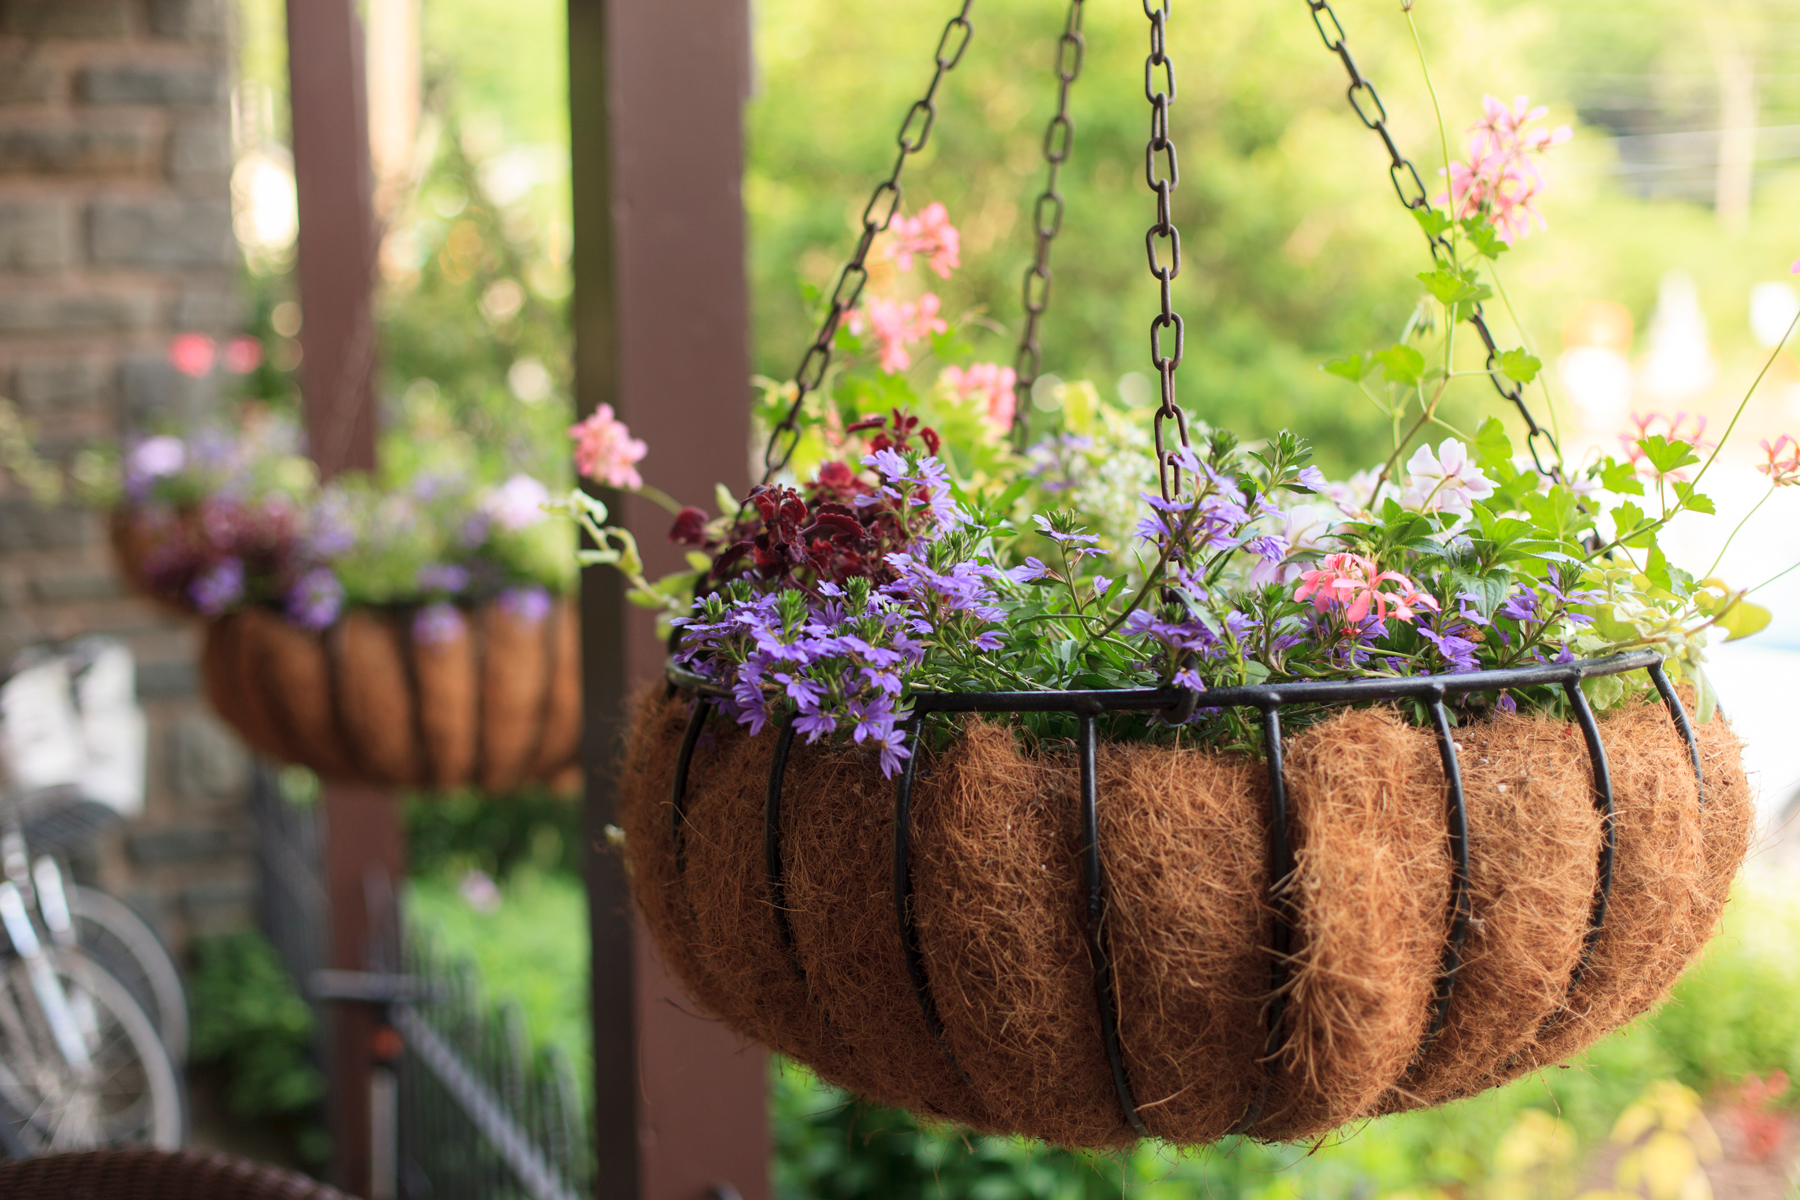 hanging baskets filled with floral plants outside